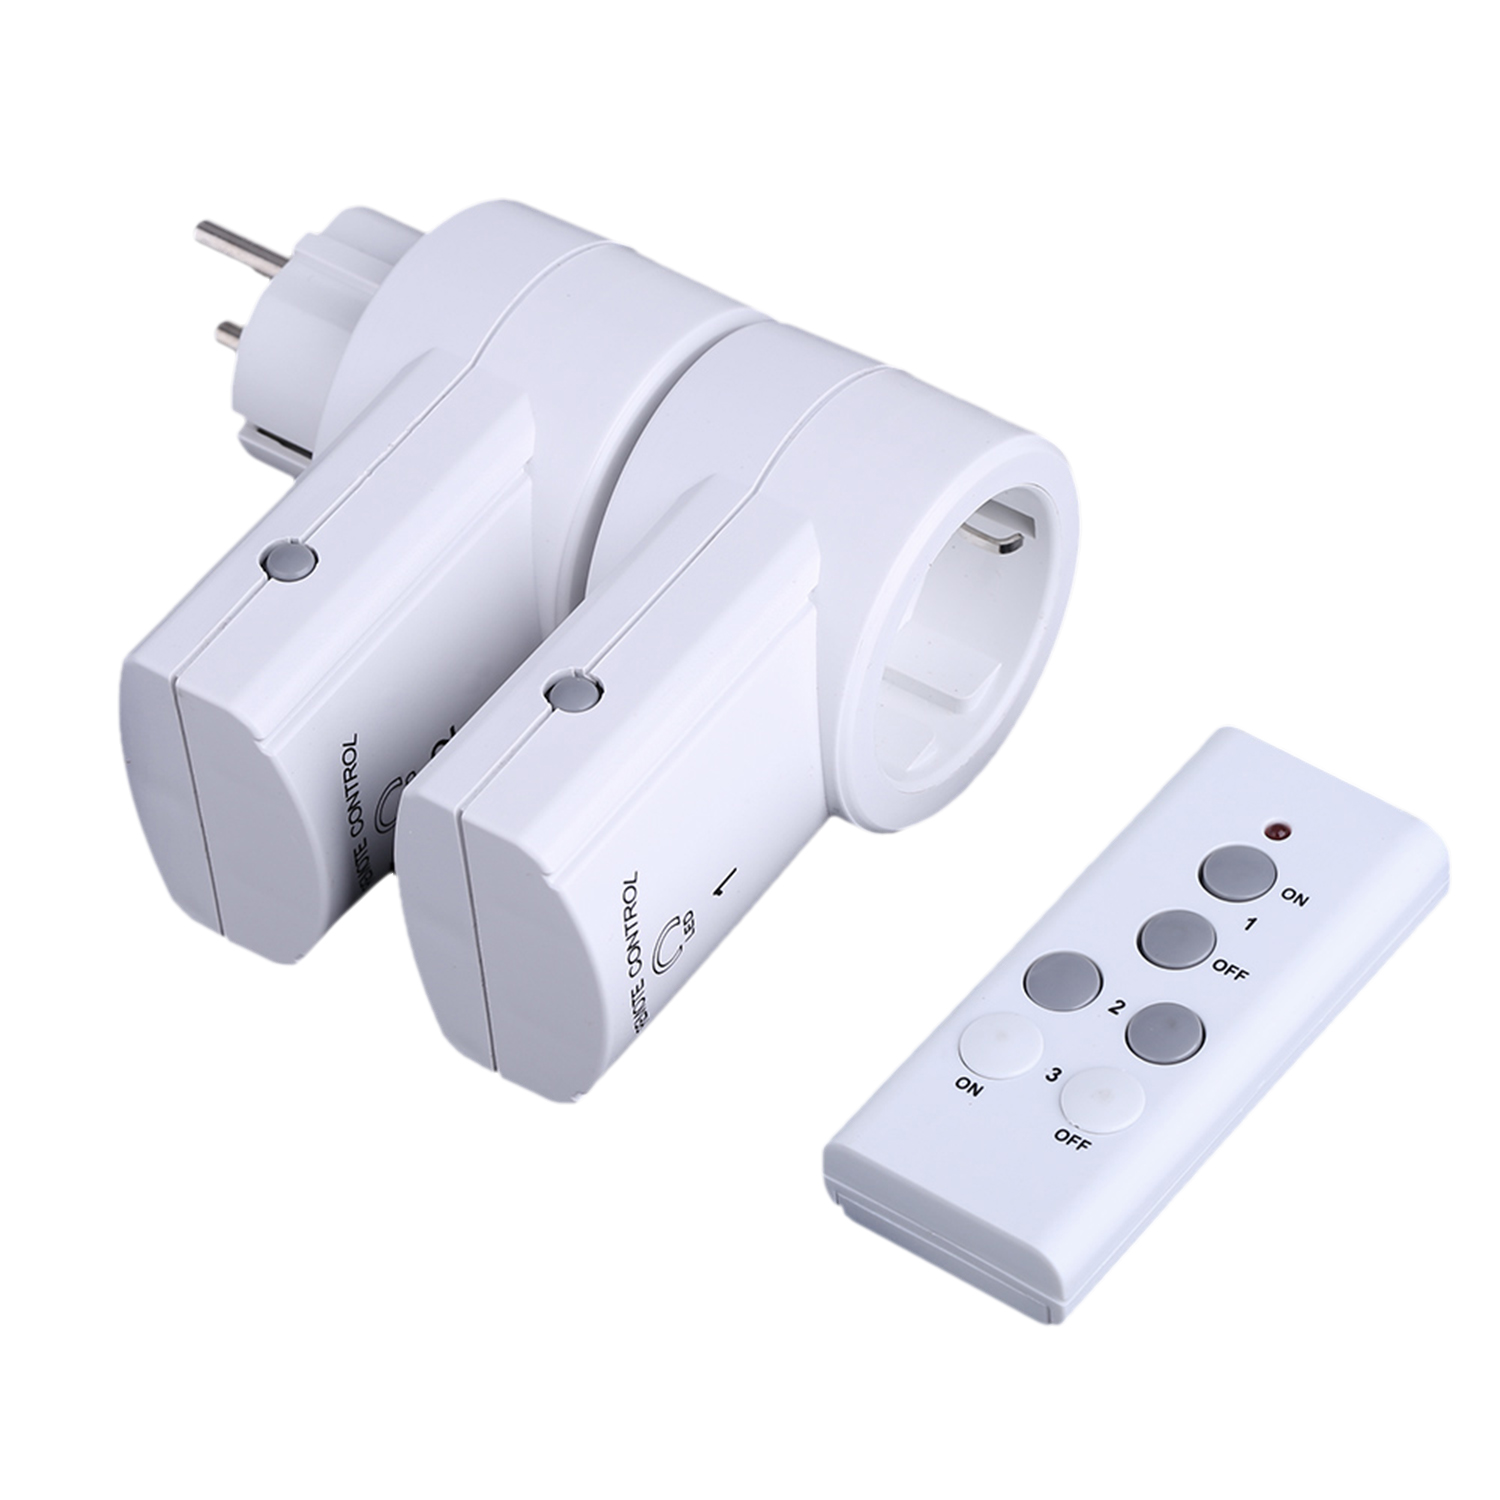 rf home relay rm light pro automation control wireless universal remote transmitter smart switch pin for compatible receiver